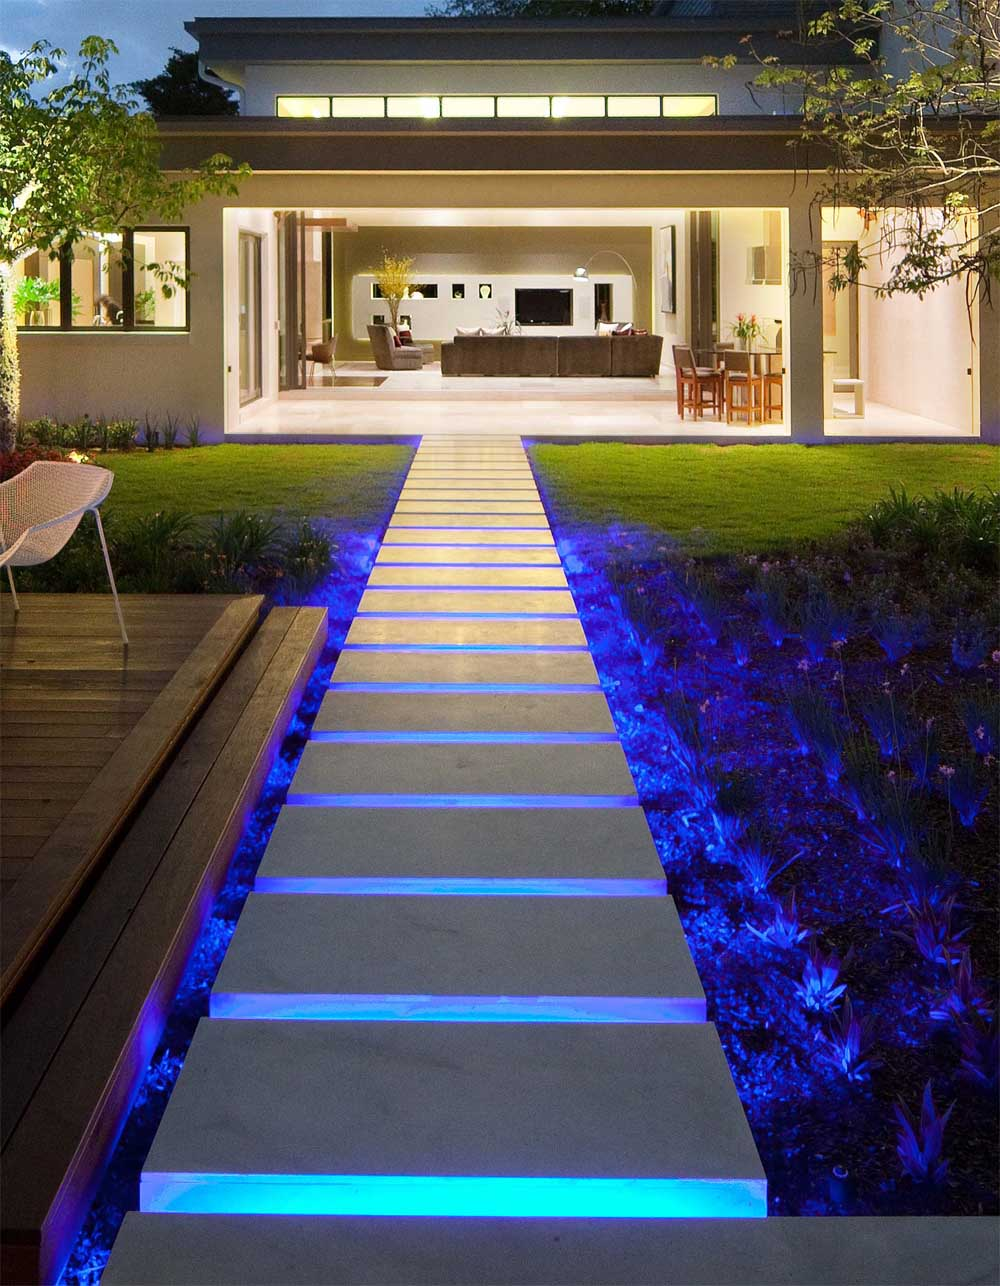 led-lighting-steps LEDs 10 uses in Architecture